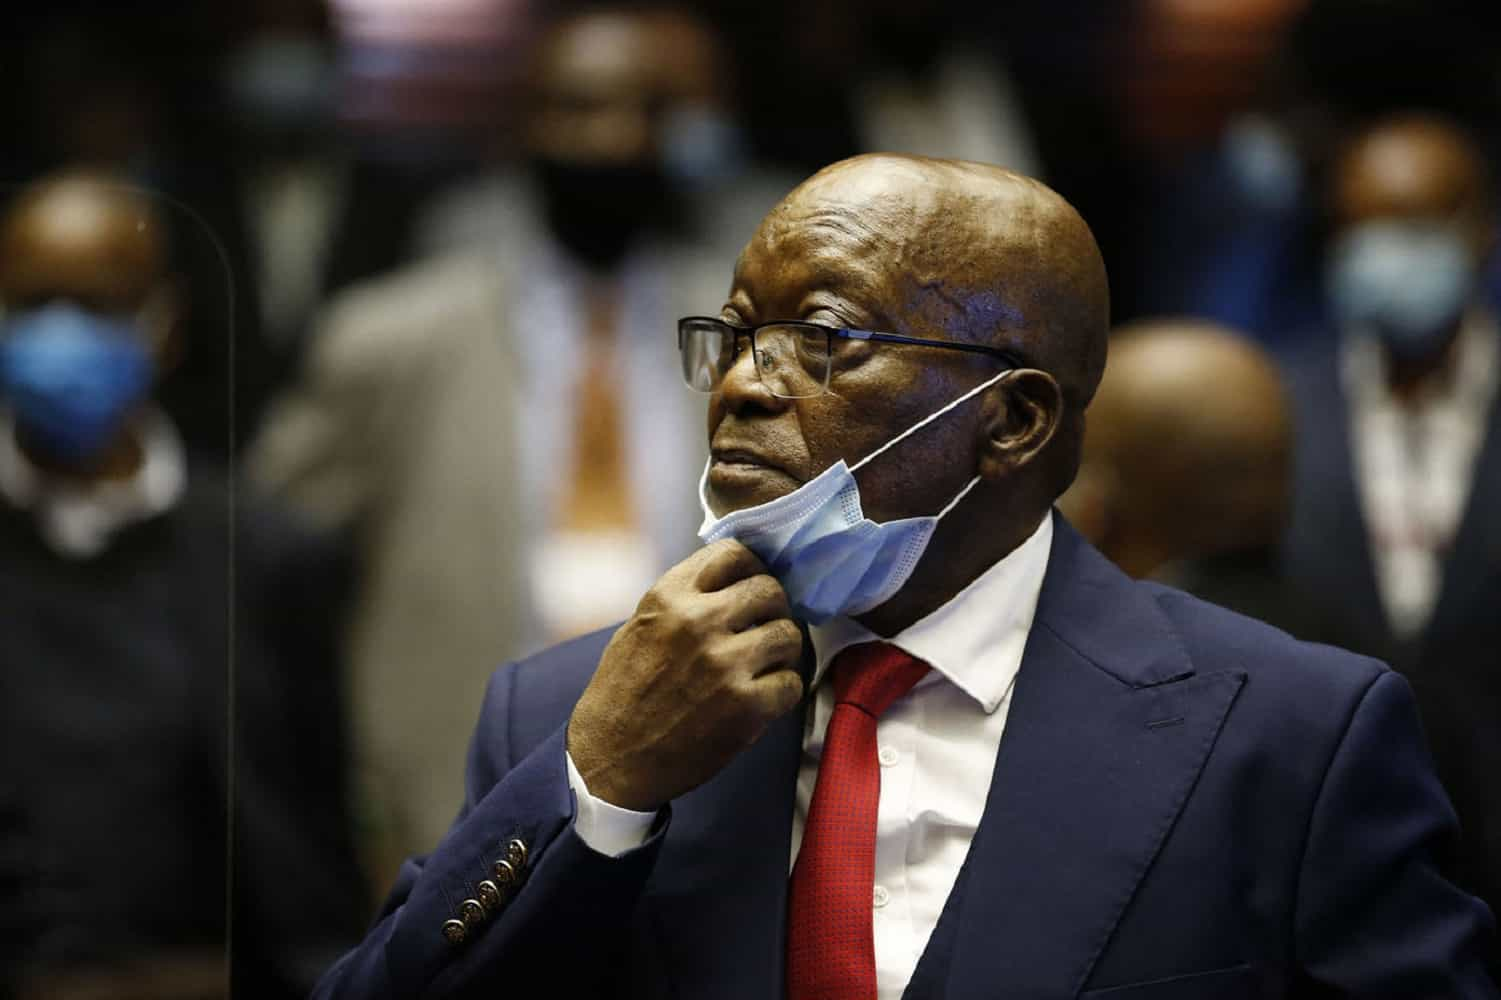 Zuma Foundation cites constitution for Thales trial to be heard in court - The Citizen